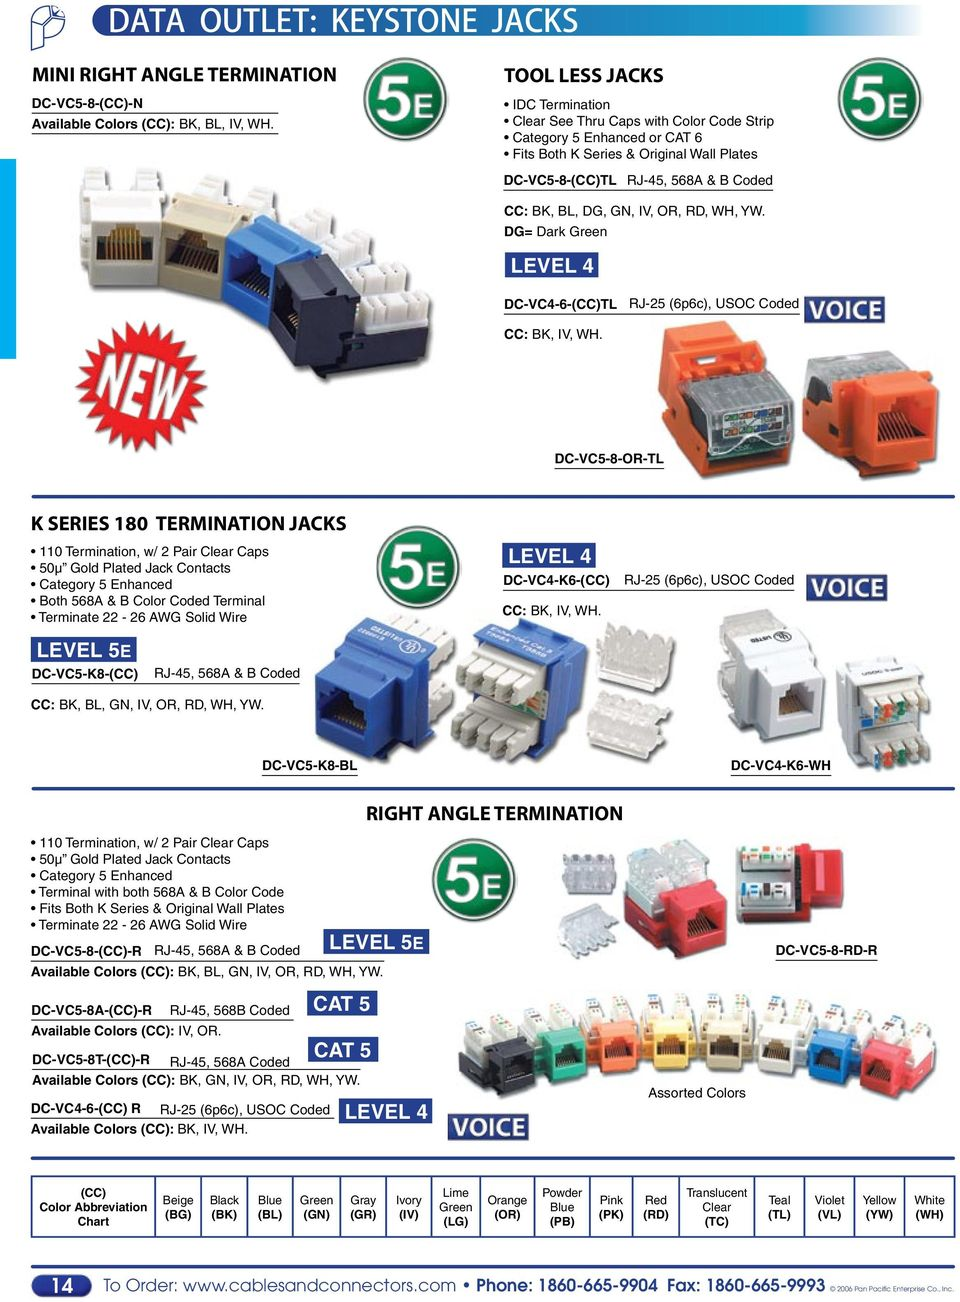 Voice Data Communication Components Accessories Pdf Bh Keystone Cat6 Jack Wiring Diagram Cat 6 Gn Iv Or Rd Wh Yw Dg Dark Level 15 110 Termination